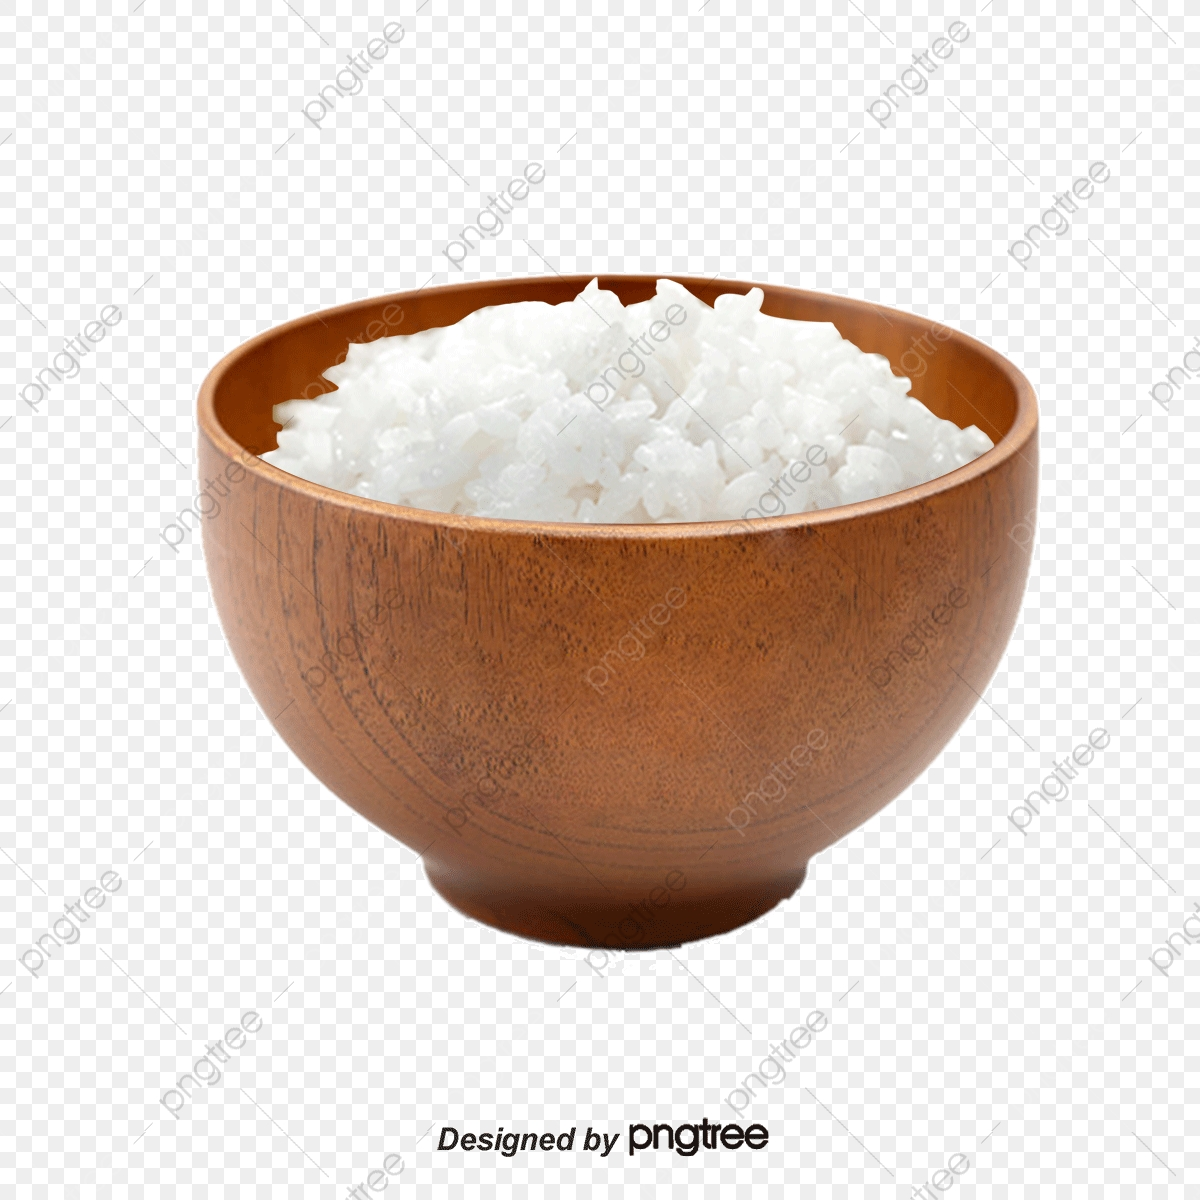 A Bowl Of Rice, Rice, Bowl, Bowls PNG Transparent Clipart Image and.